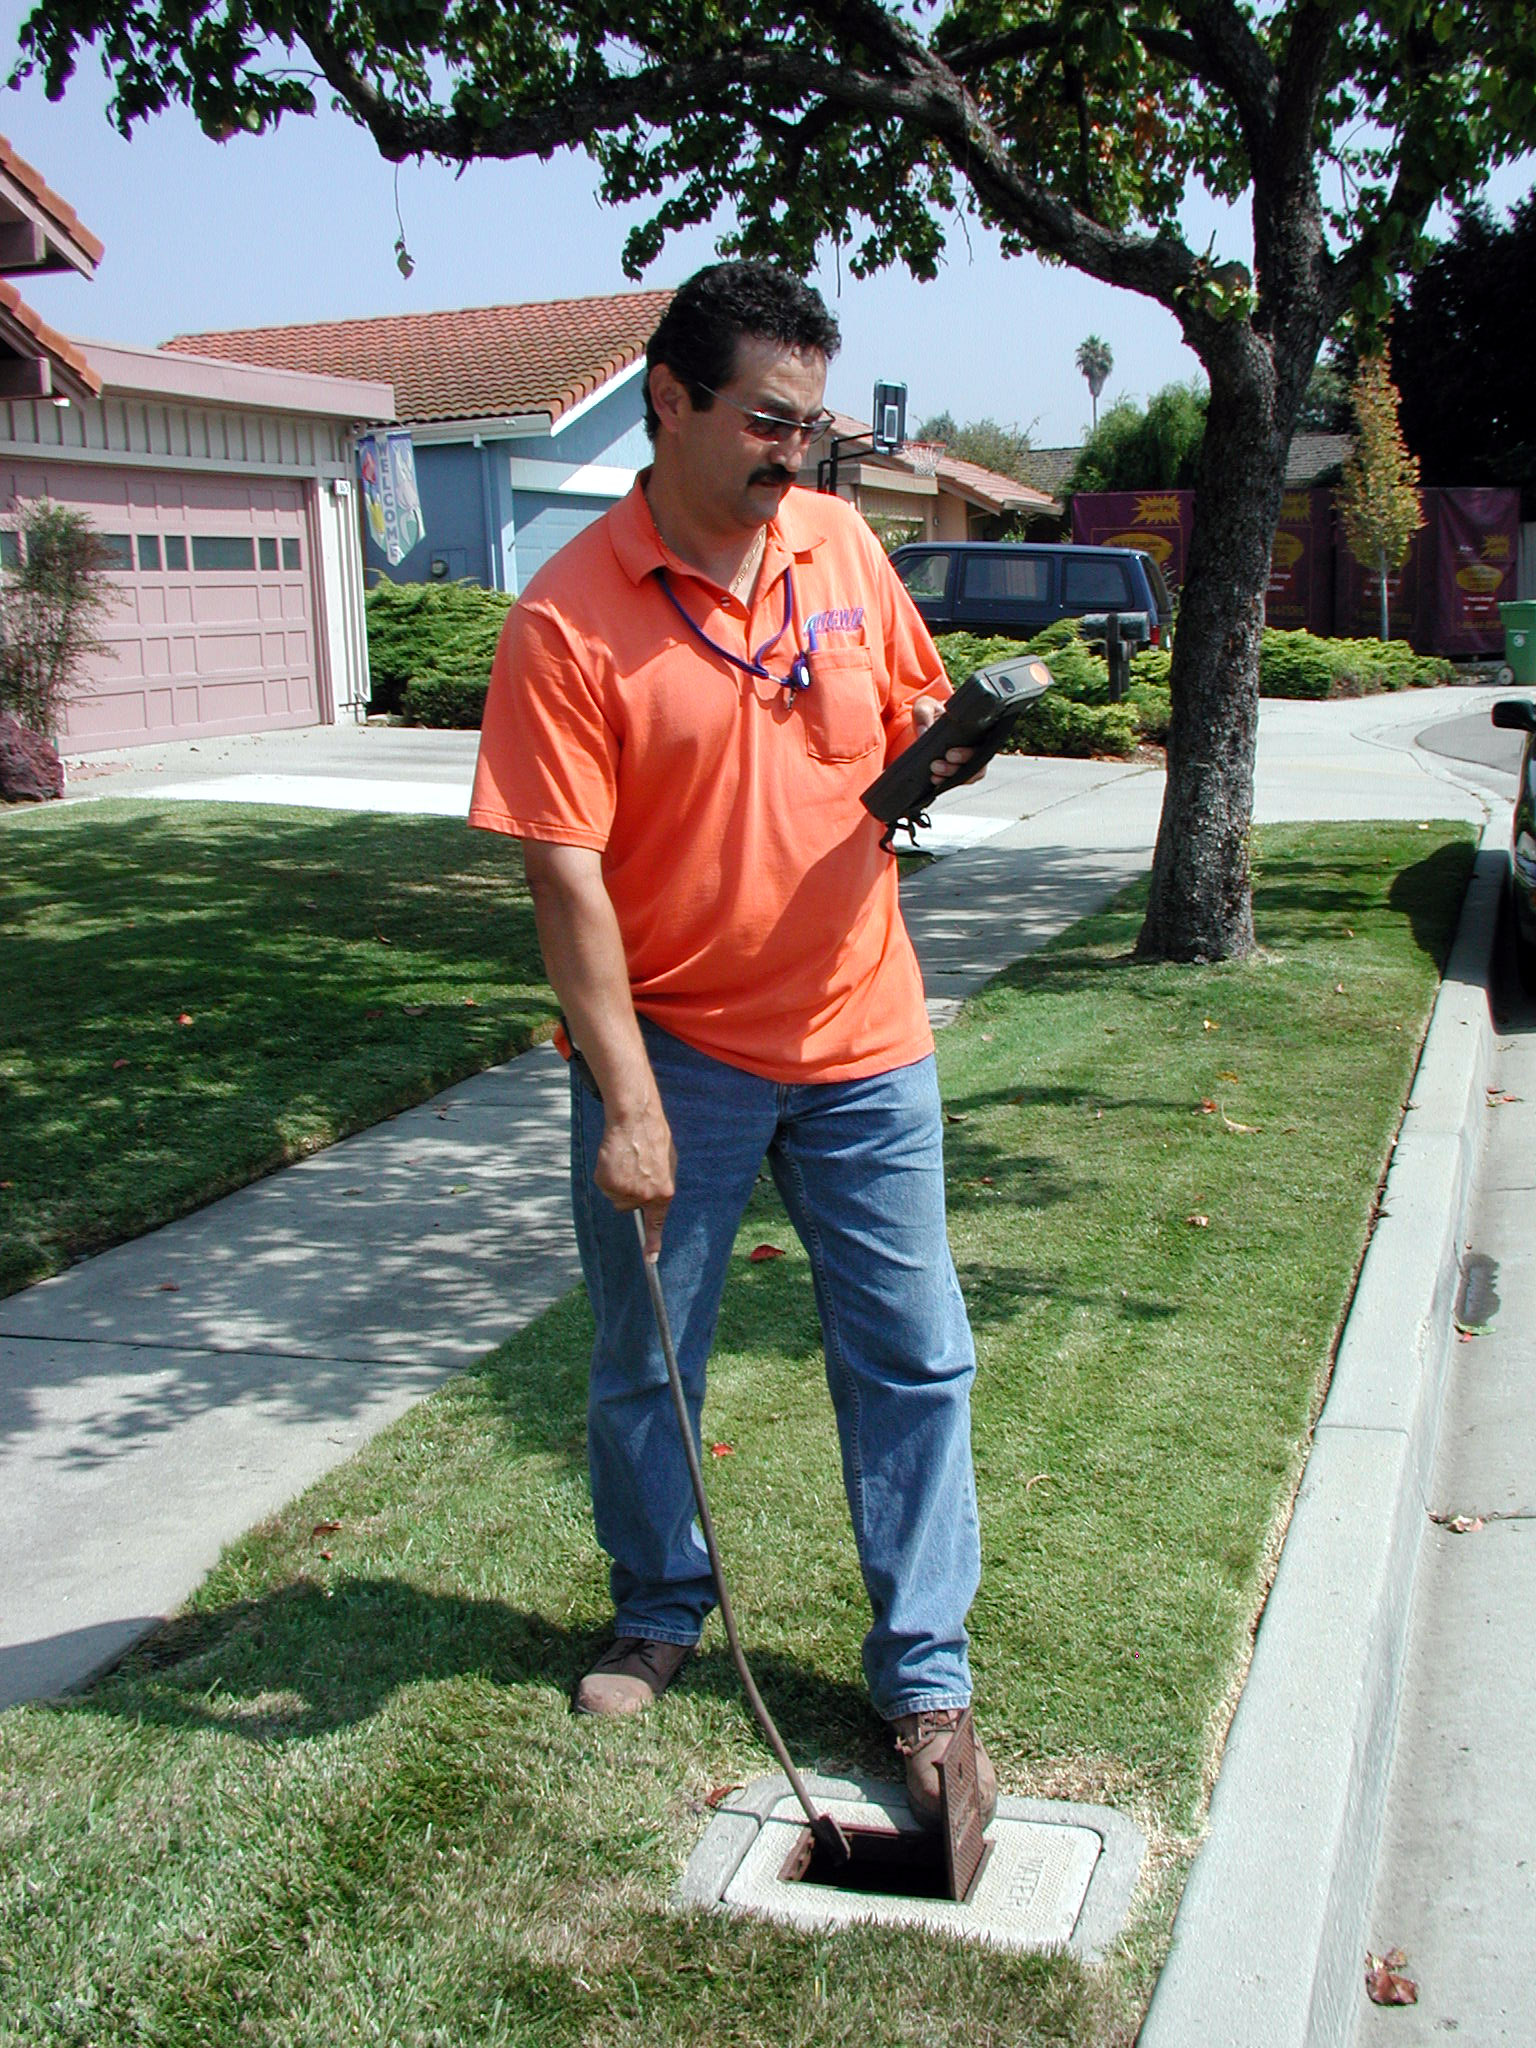 Customer service alameda county water district - Exterior water service line coverage ...